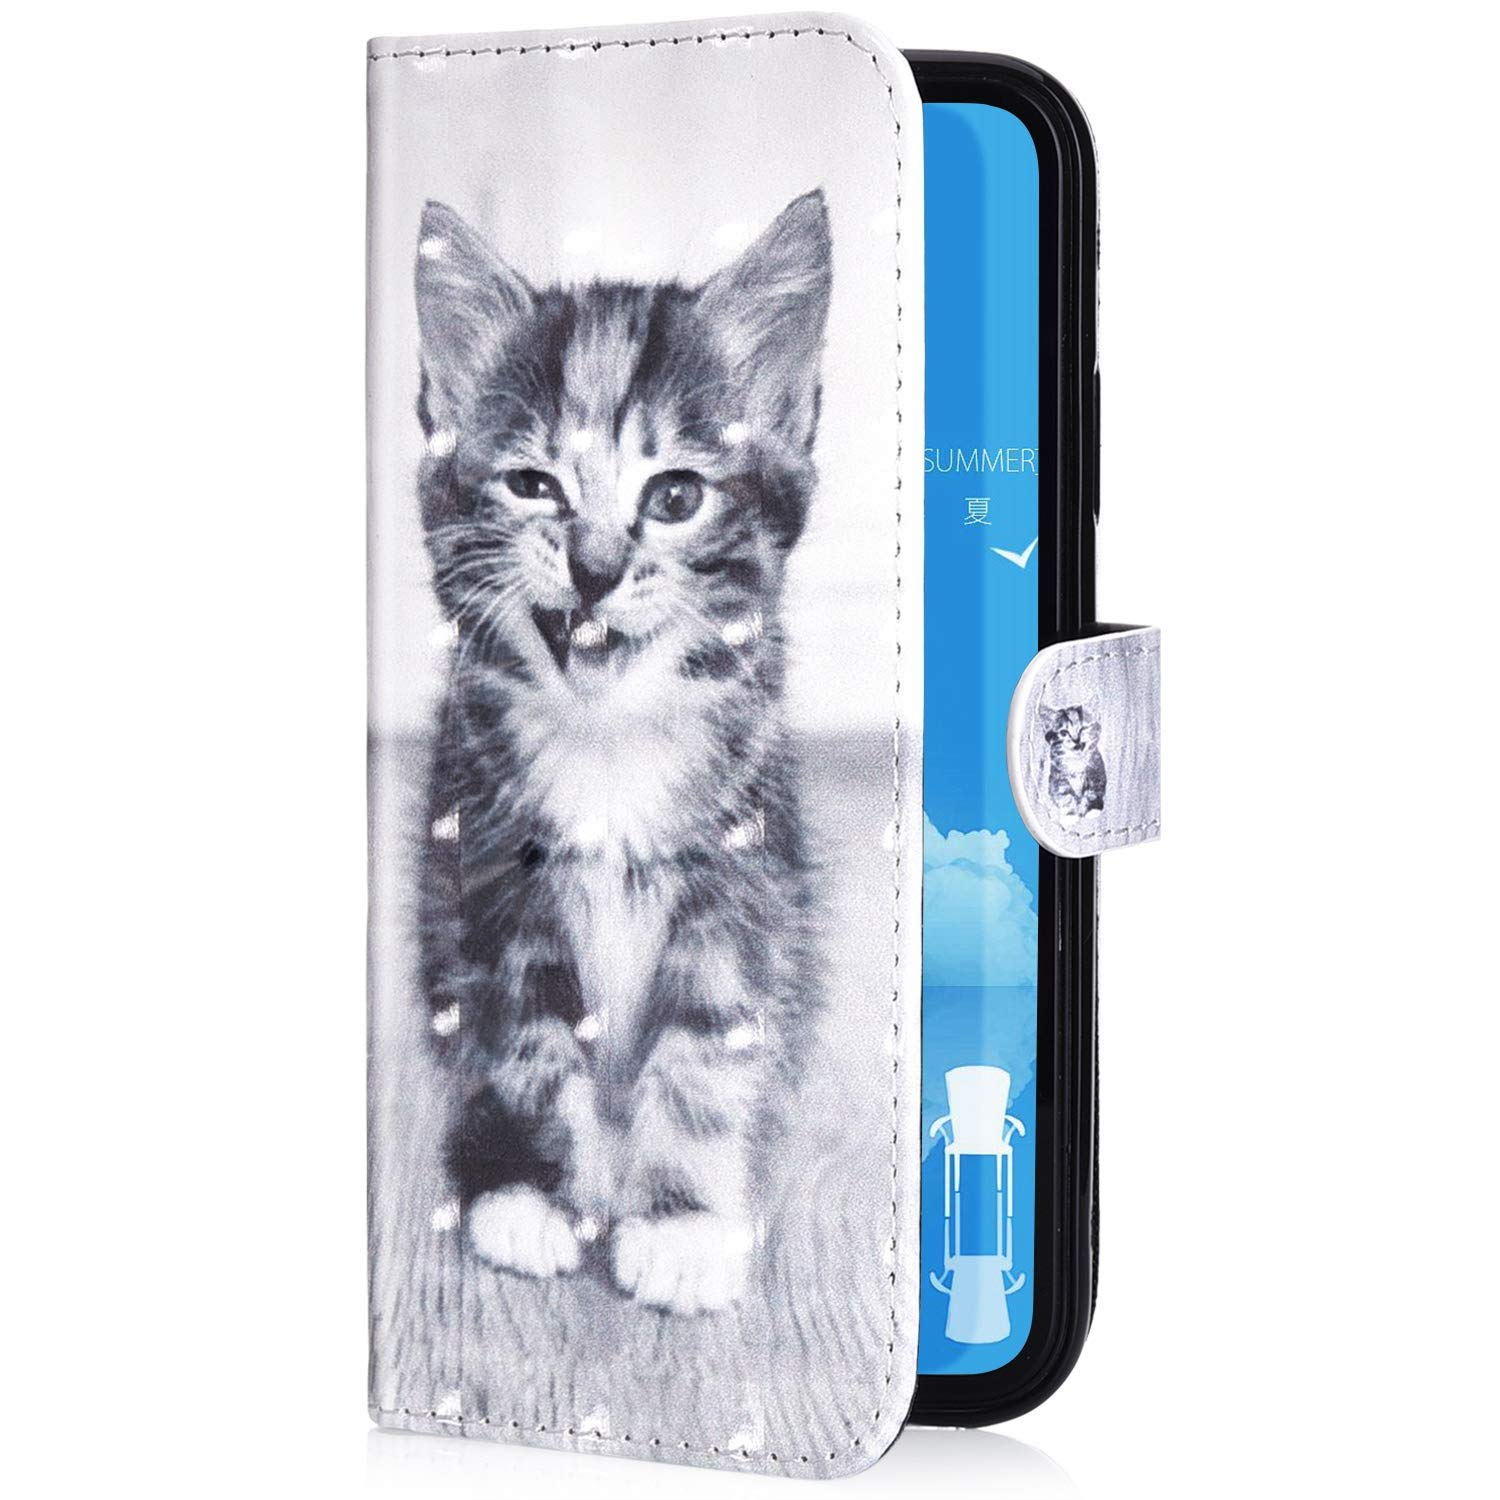 PHEZEN Case for iPhone 7 Plus,iPhone 8 Plus Wallet Case,3D Bling PU Leather Folio Flip Case Full Body Protective Phone Case Cover with Kickstand Credit Card Wrist Strap Husky